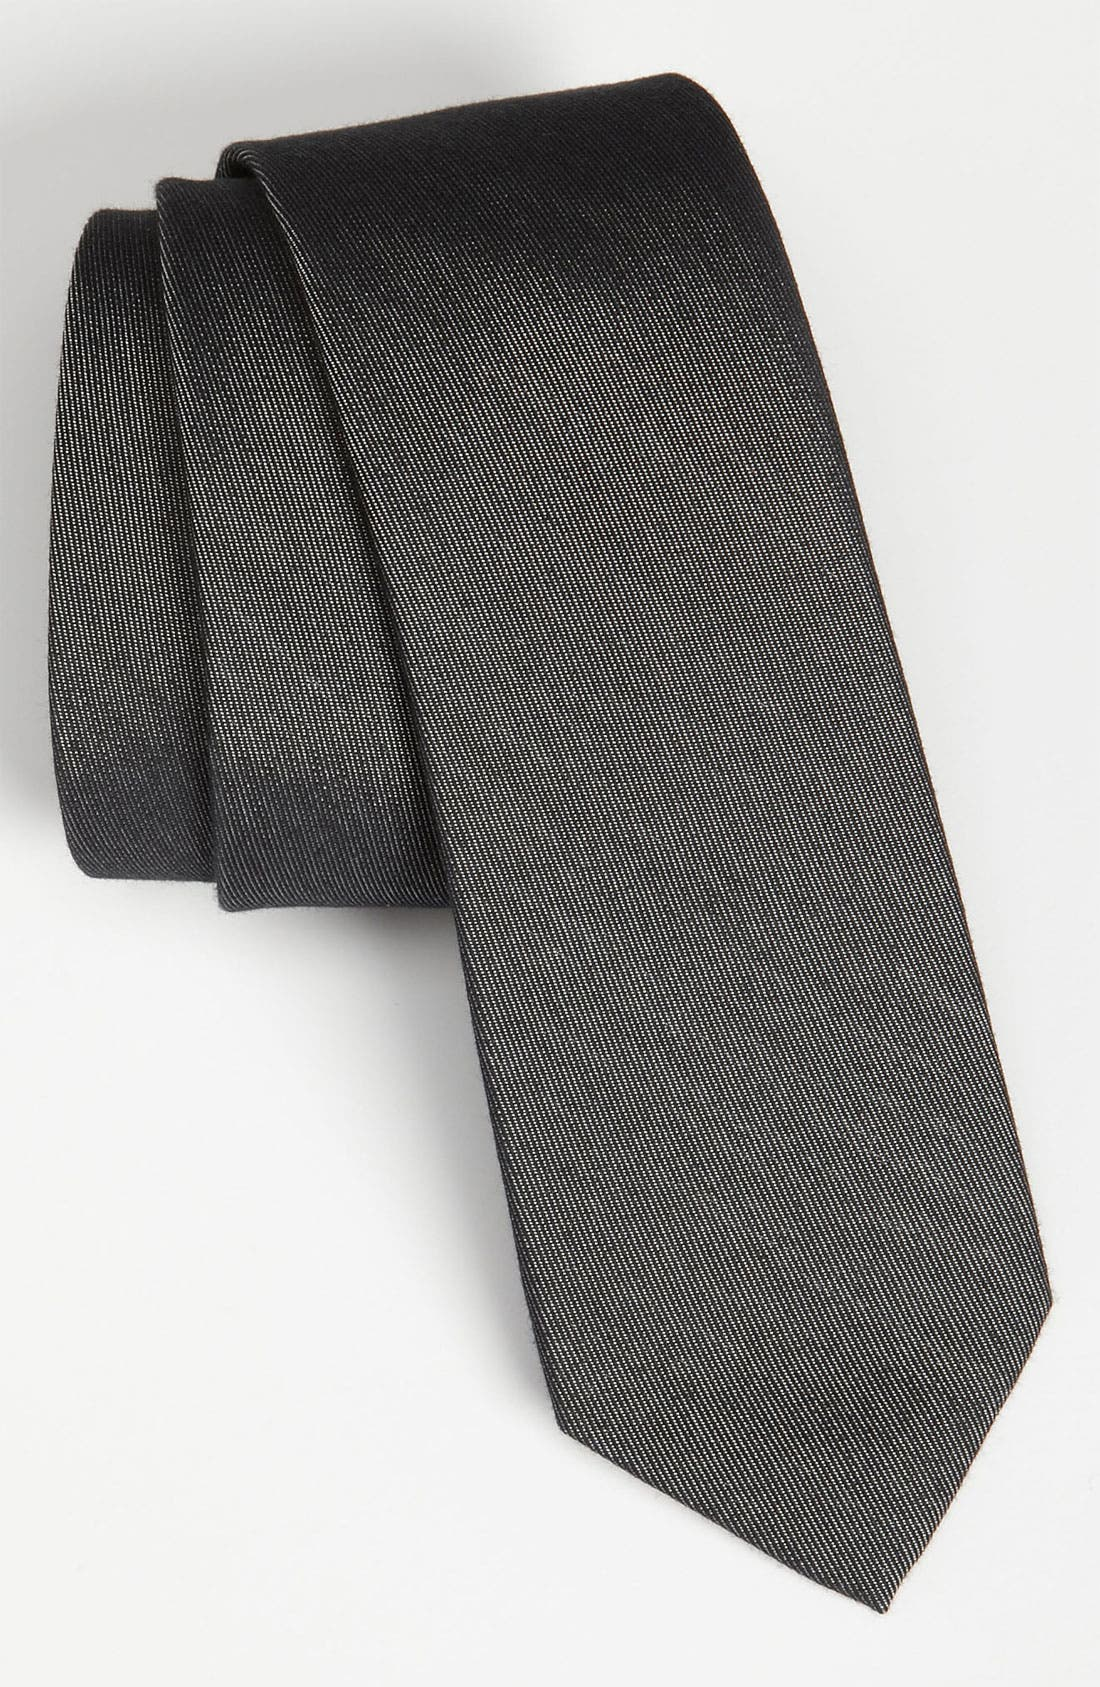 Main Image - Public Opinion Woven Tie